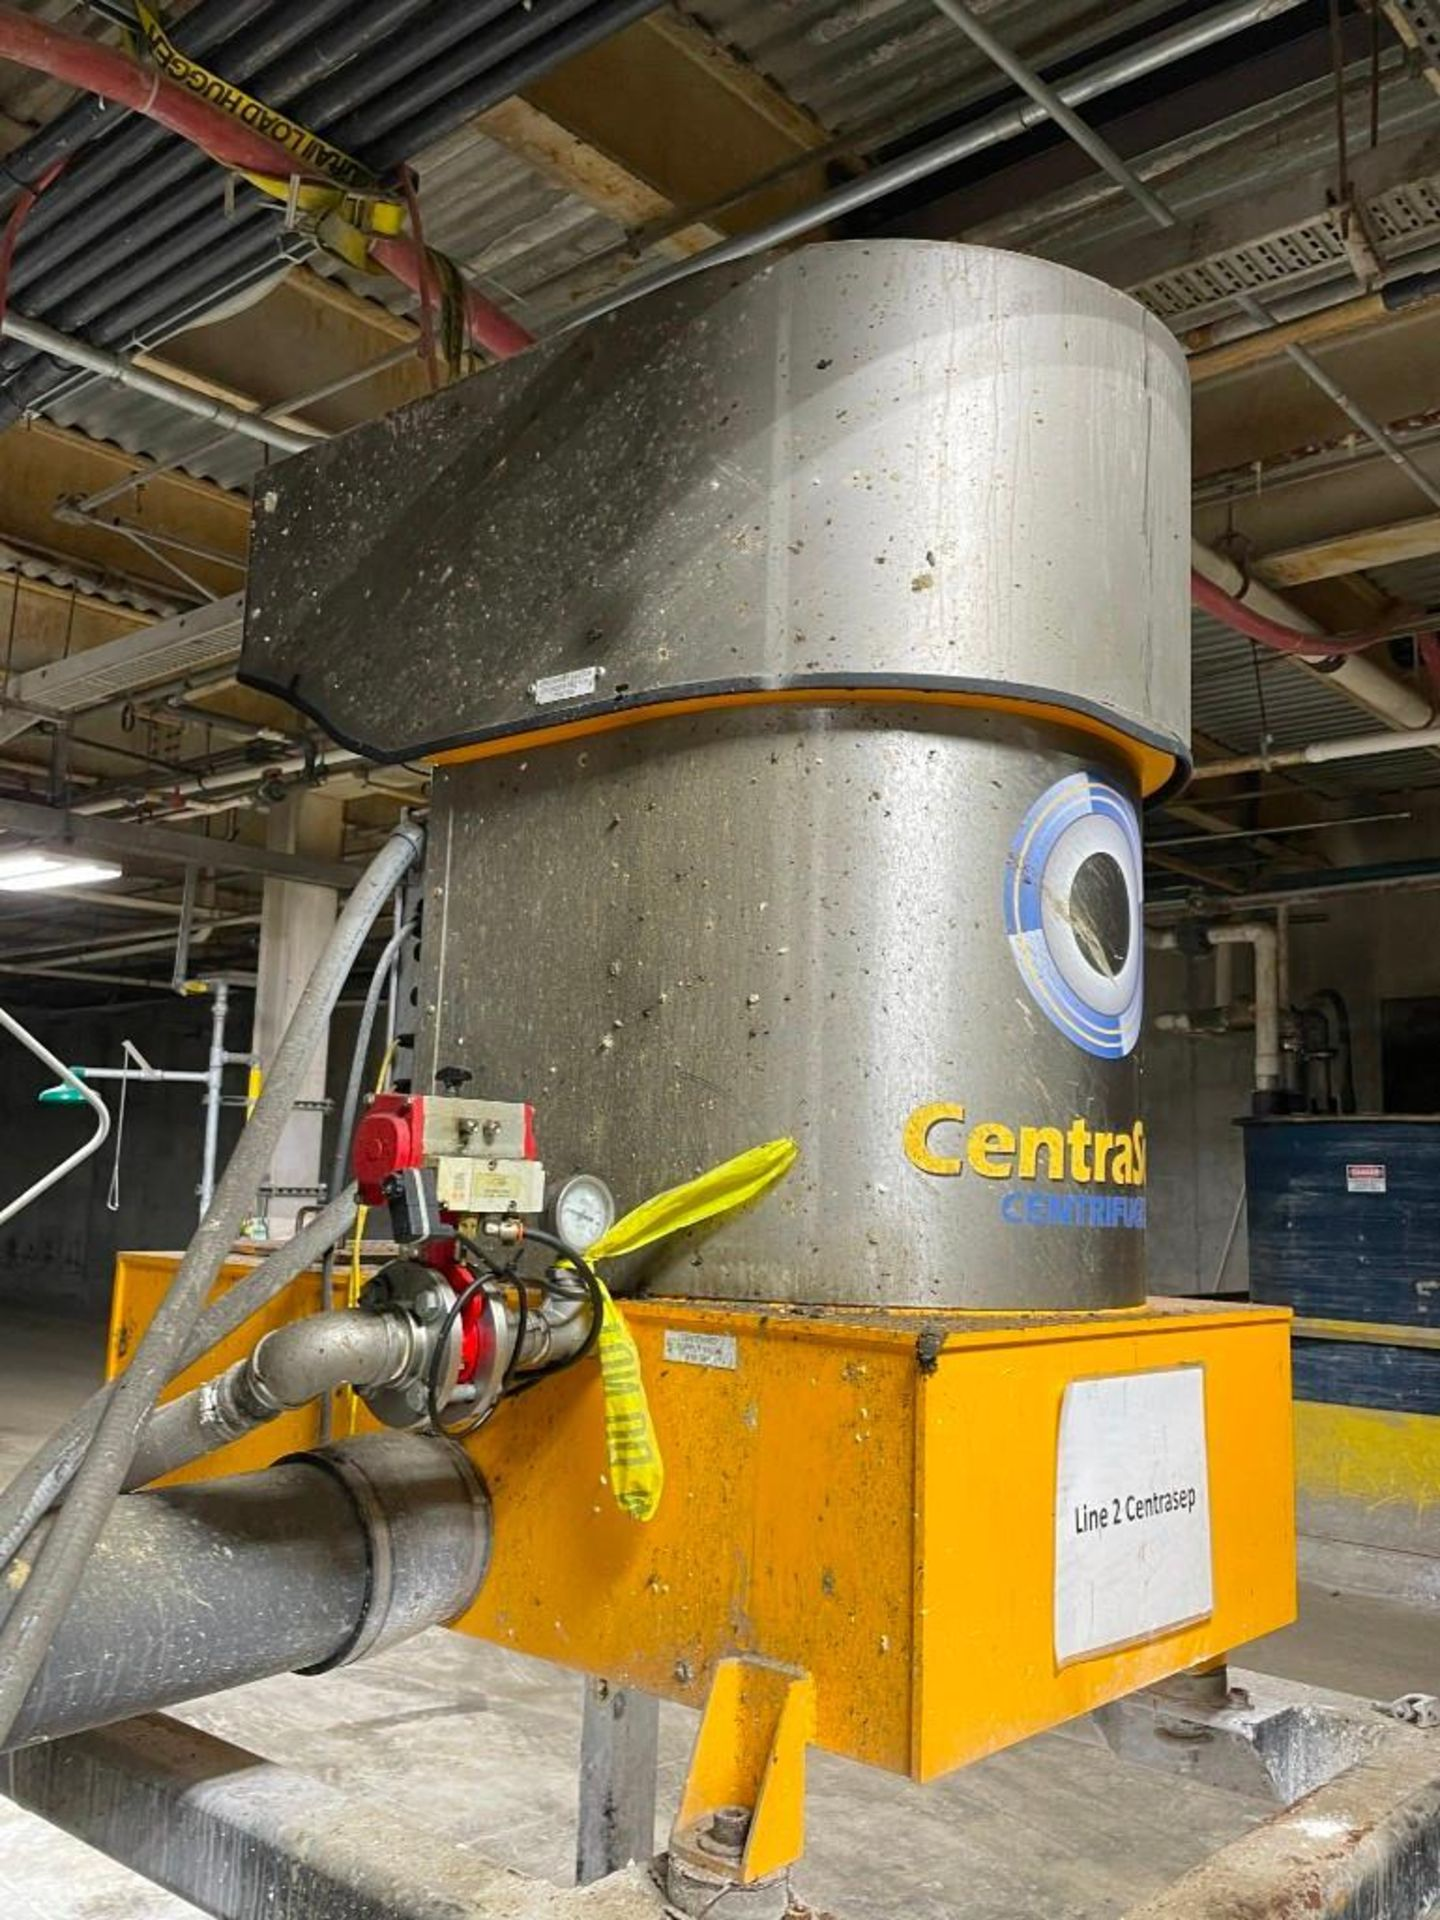 CentraSep Centrifugal Separation 3 Tank Filtration System - Image 7 of 9